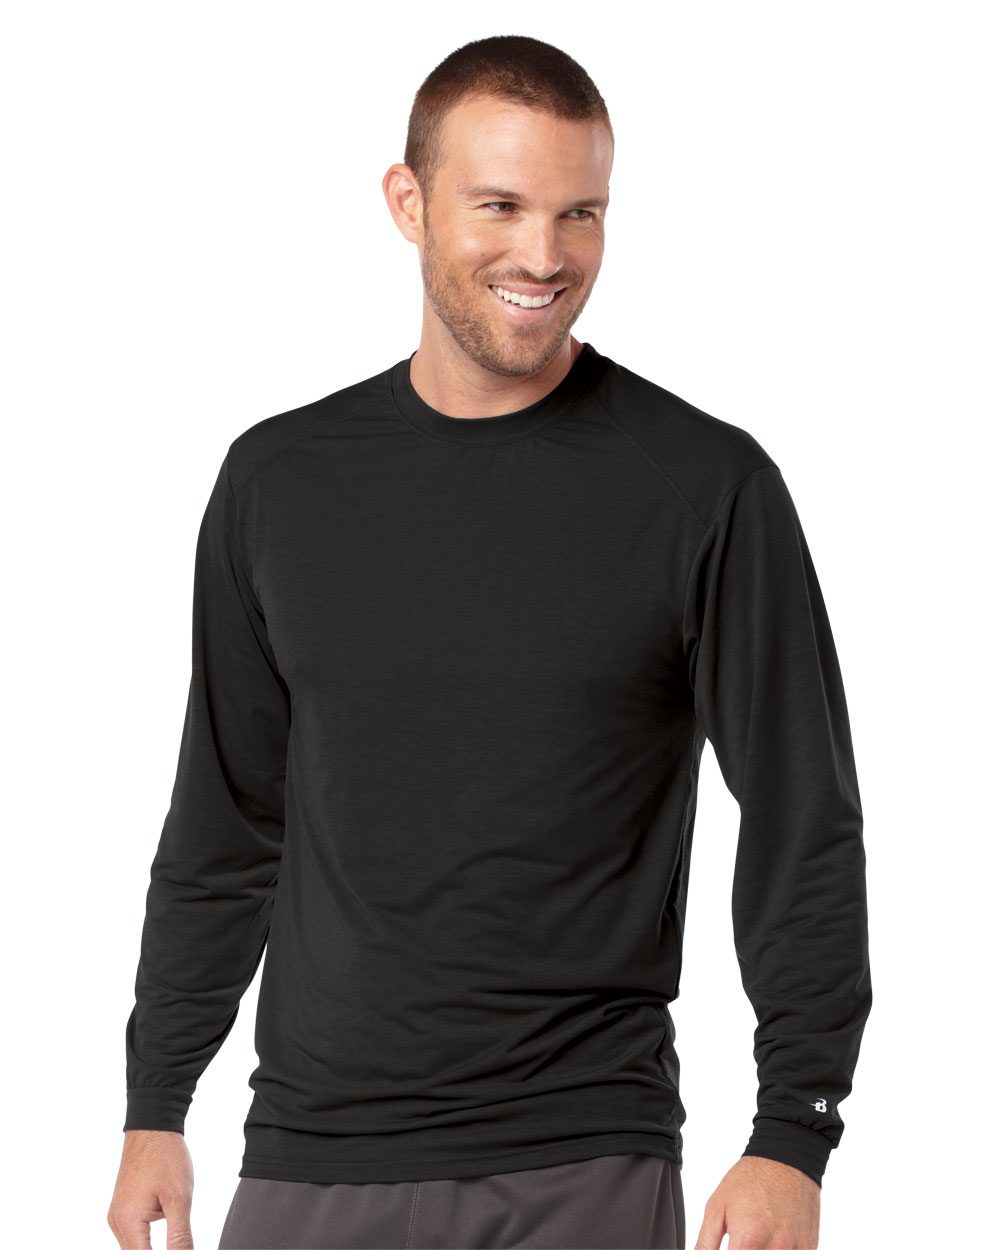 Badger 4804 - B-Tech Cotton-Feel Long Sleeve T-Shirt